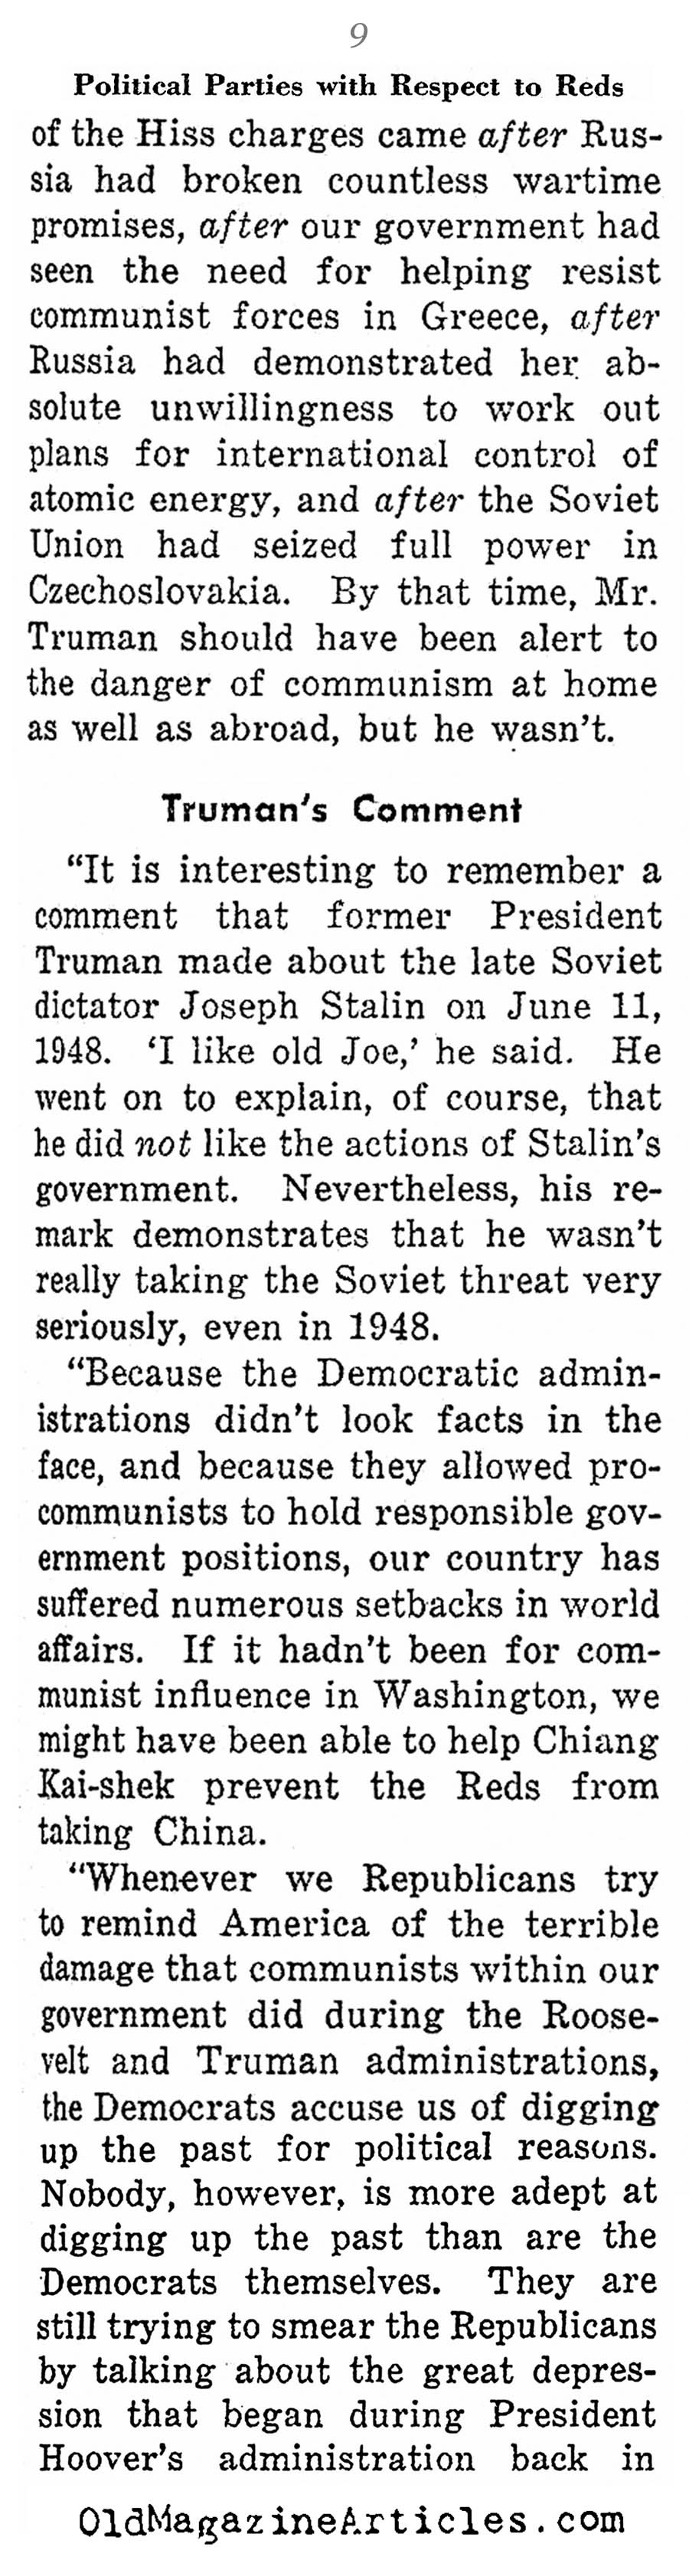 Reds in the Government (Weekly News Review, 1953)